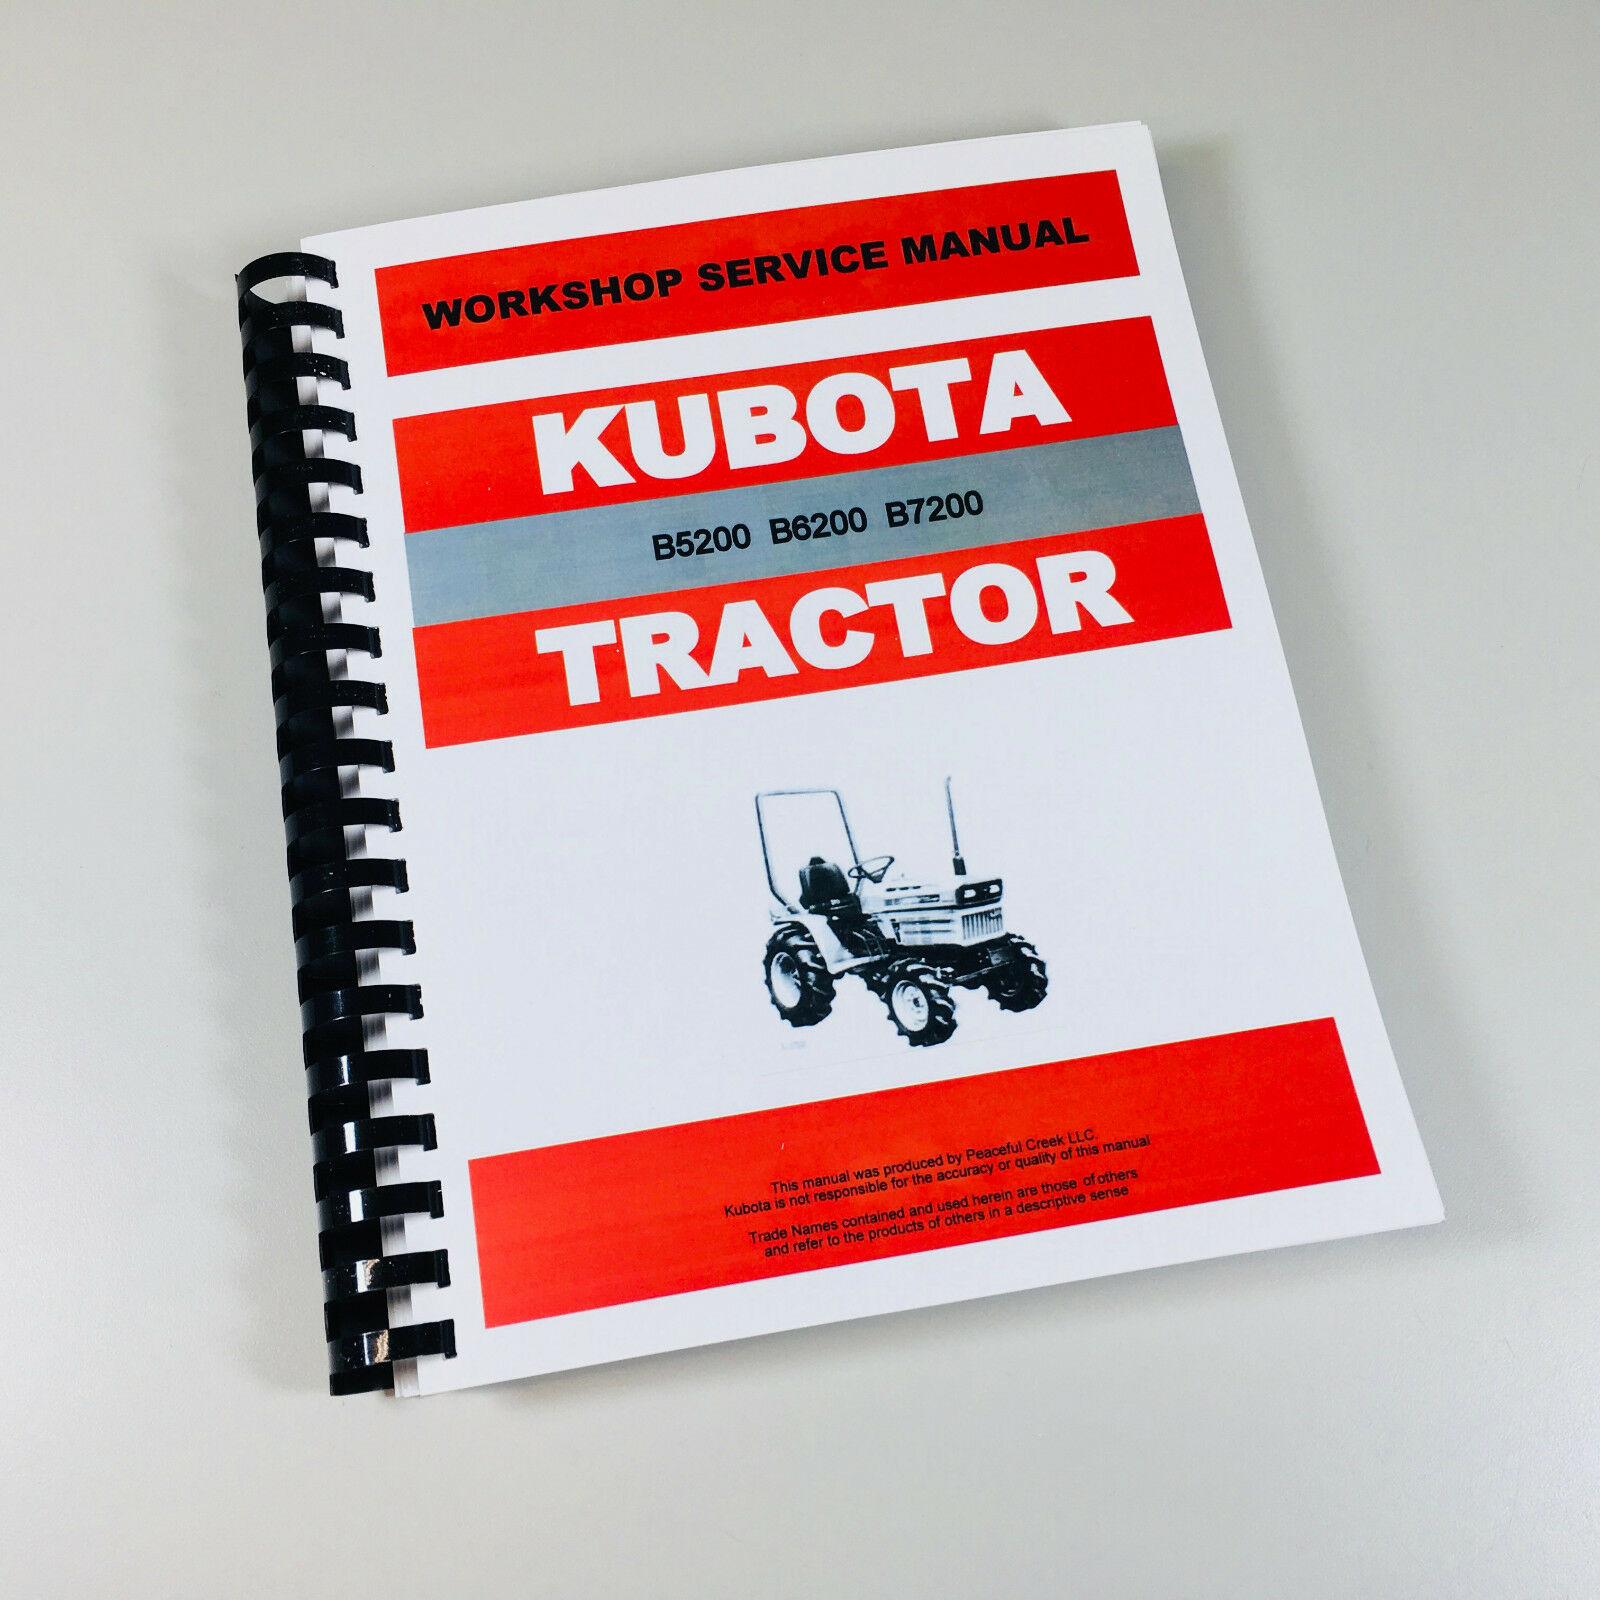 kubota b7200 b7200e b7200d tractor service repair manual technical rh ebay com Kubota B7200 Purolator Oil Filter Kubota B7200 Parts Diagram